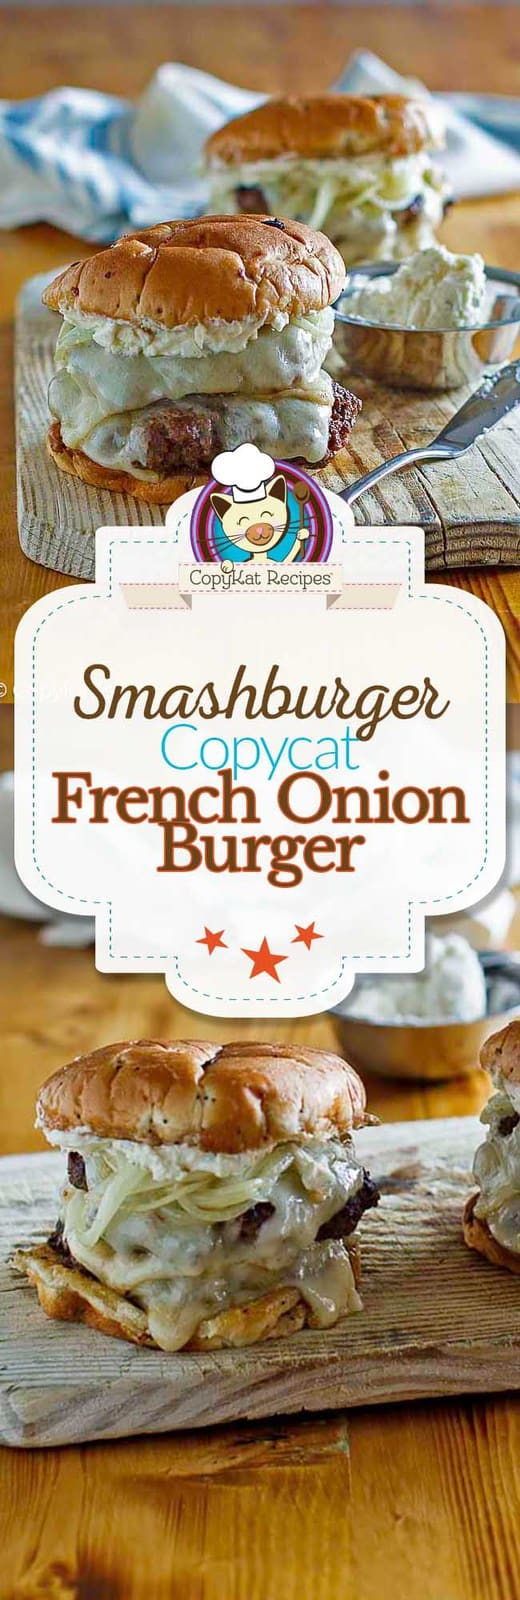 Recreate the Smashburger French Onion Burger at home with this copycat recipe.   #copycat #copycatrecipe #burger